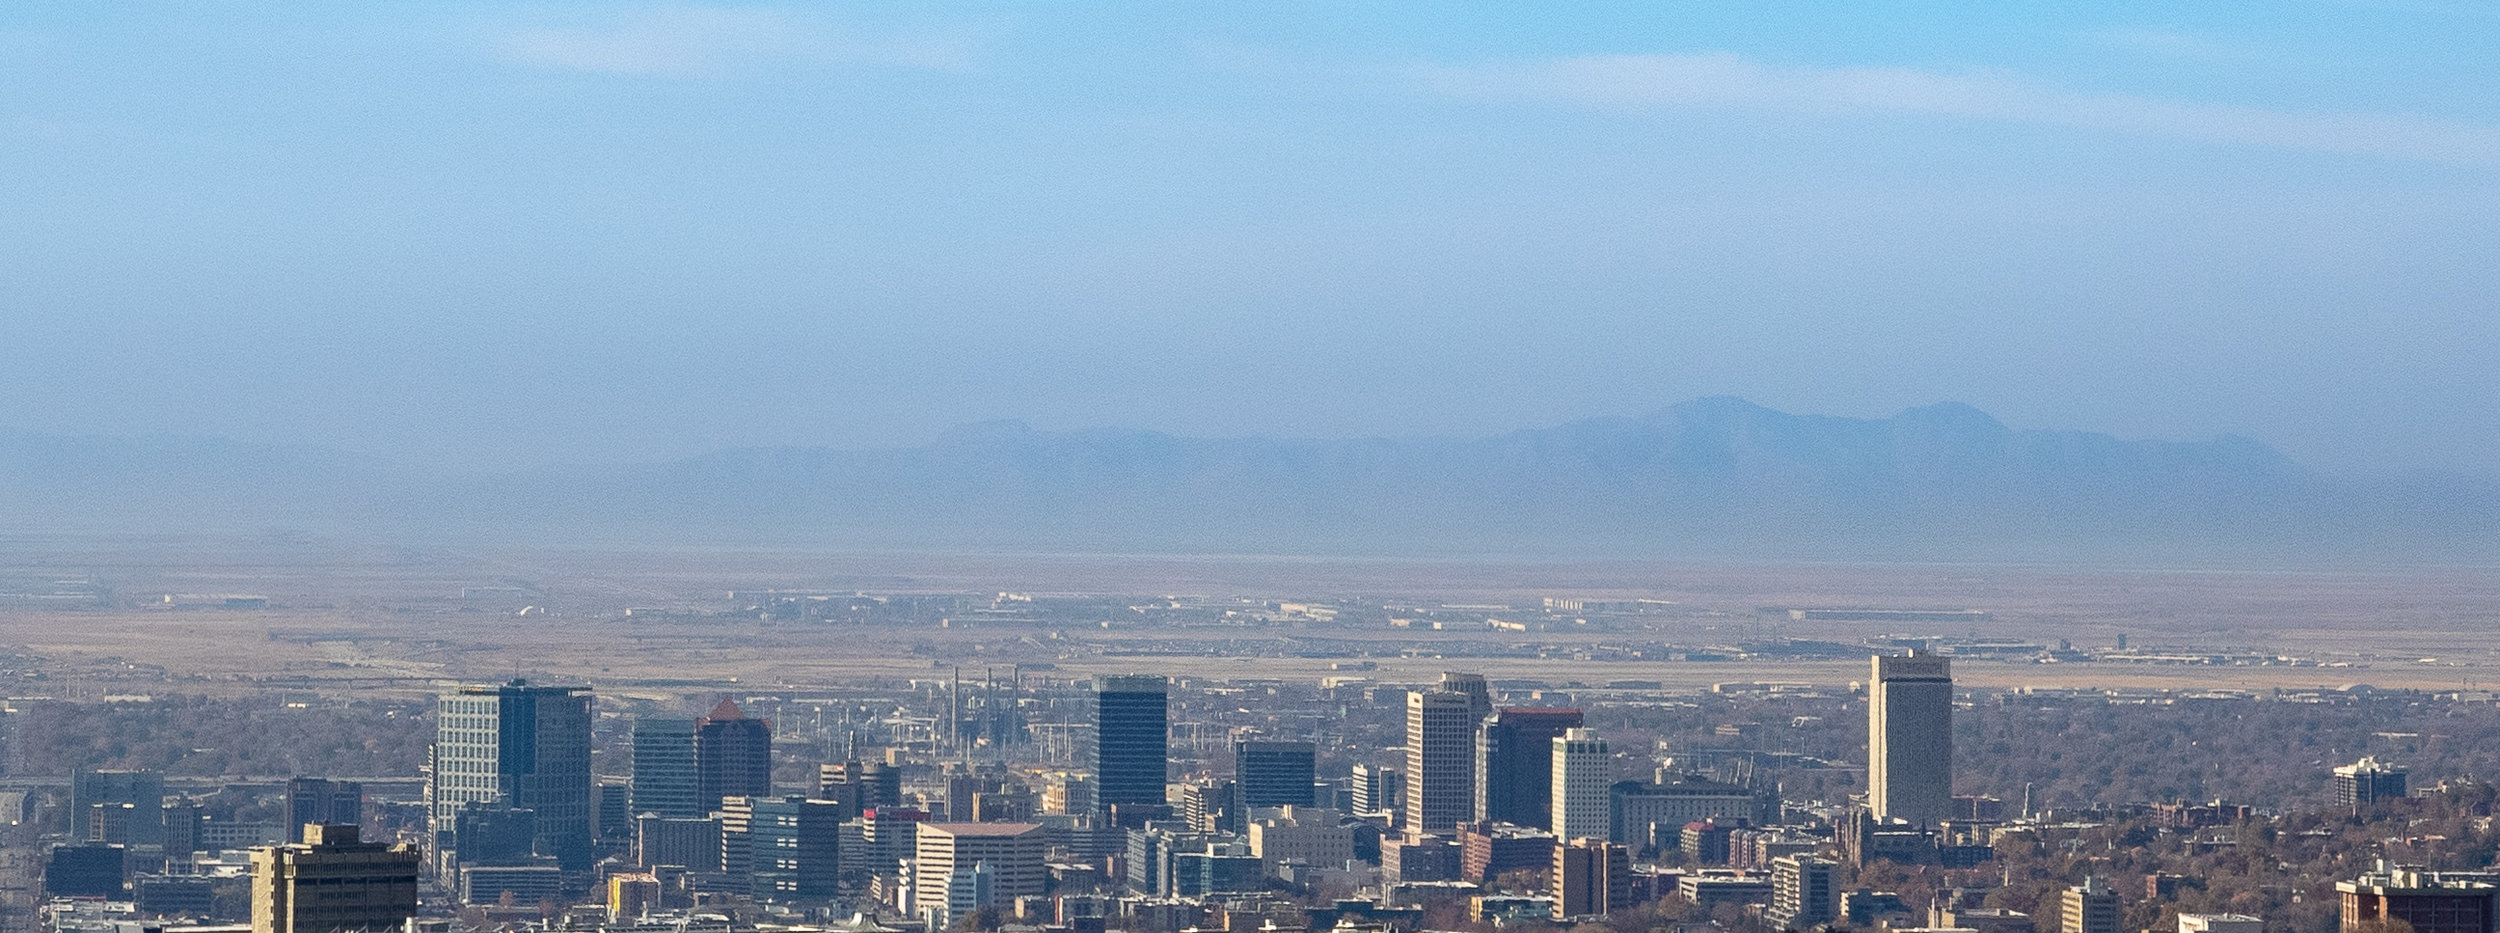 Salt Lake City Skyline from The Living Room Lookout Trail